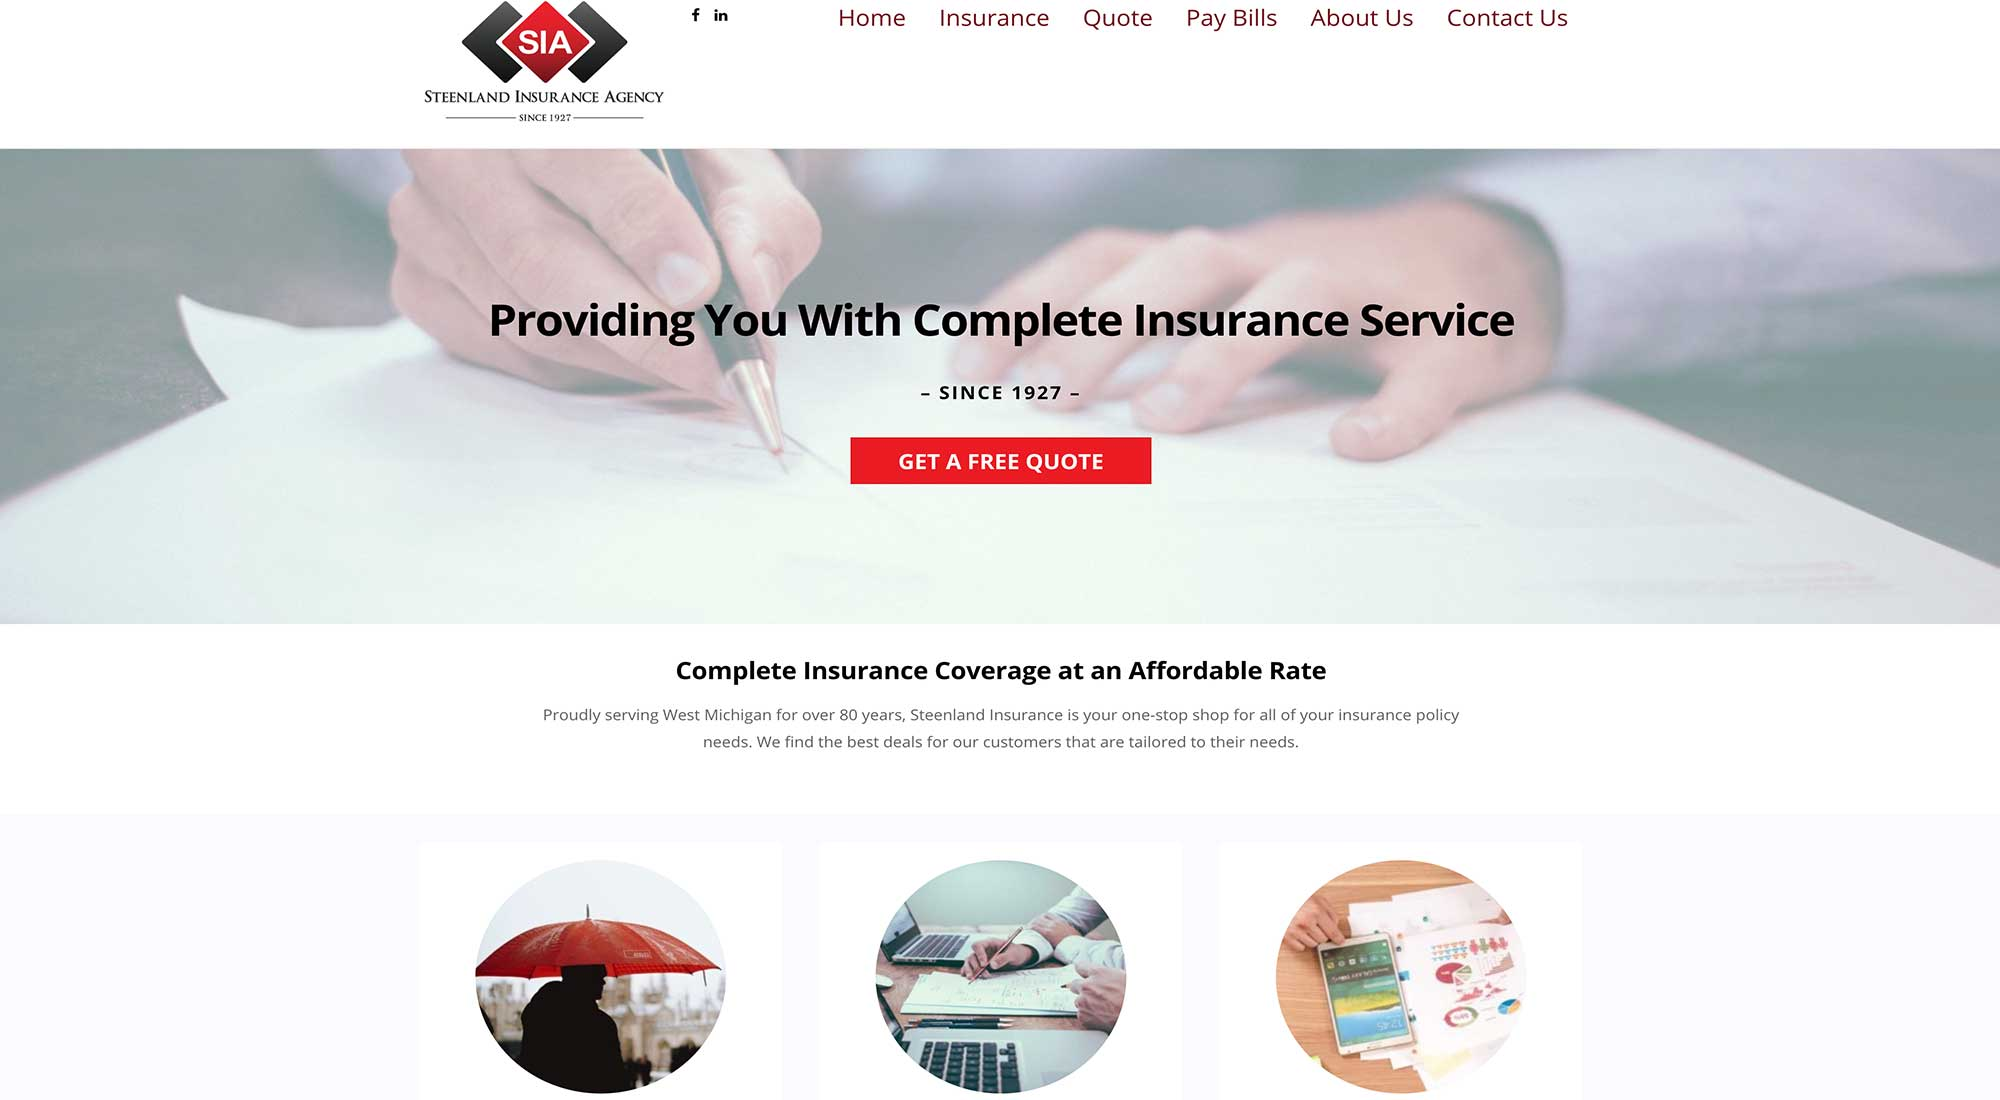 Steenland Insurance Grand Rapids MI Website Design Pixelvine Creative